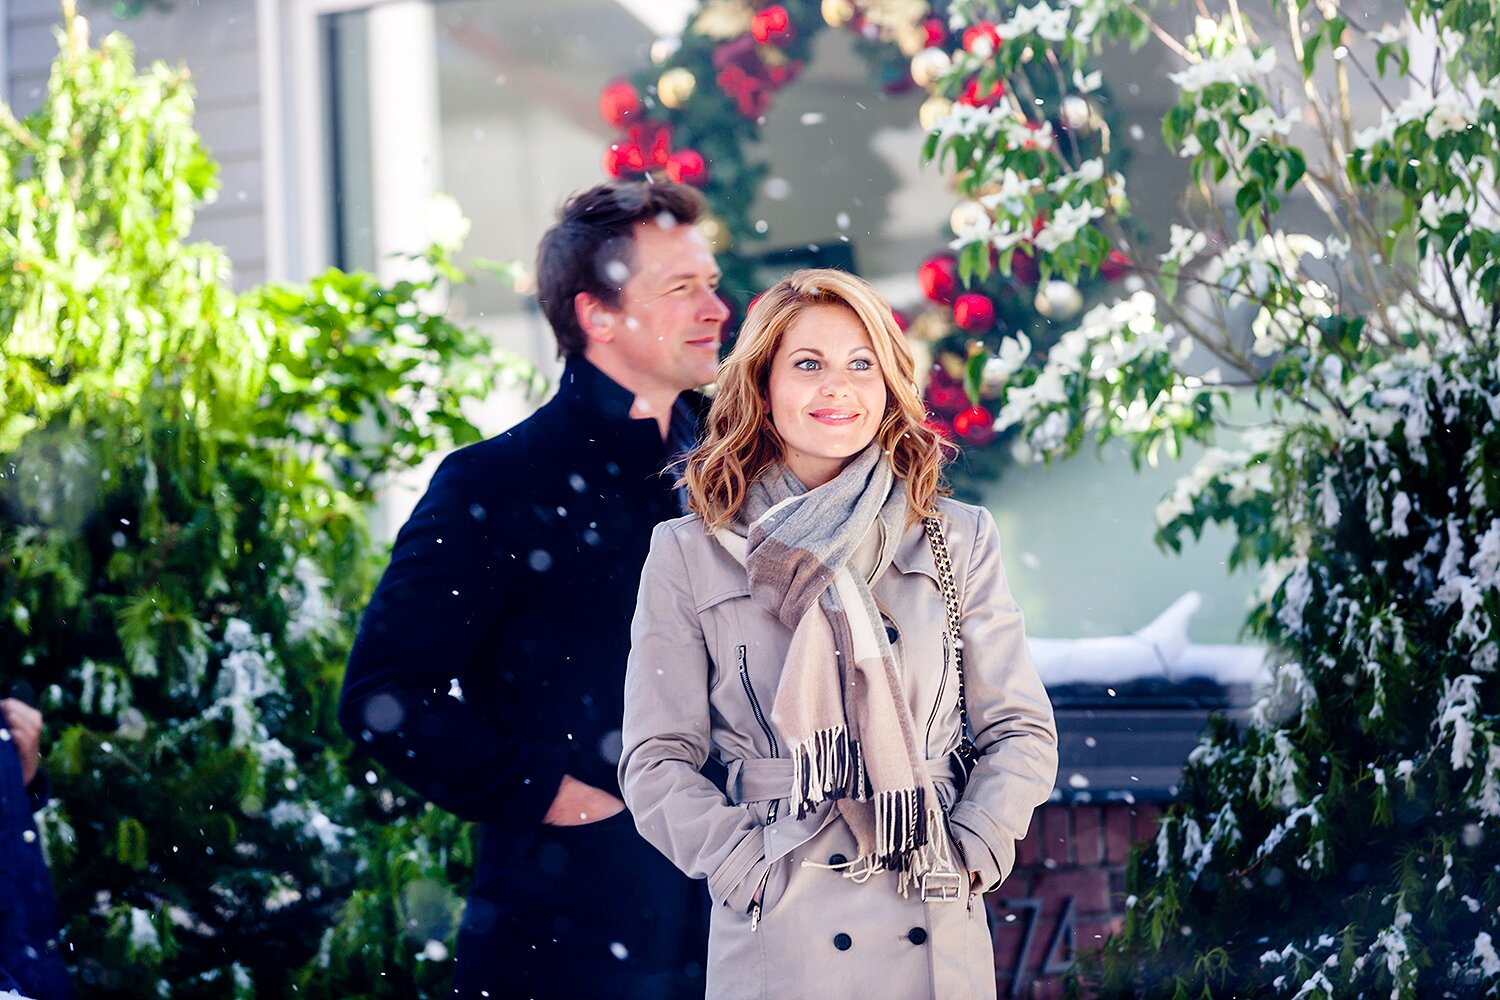 candace cameron next to a man in a black coat in the snow